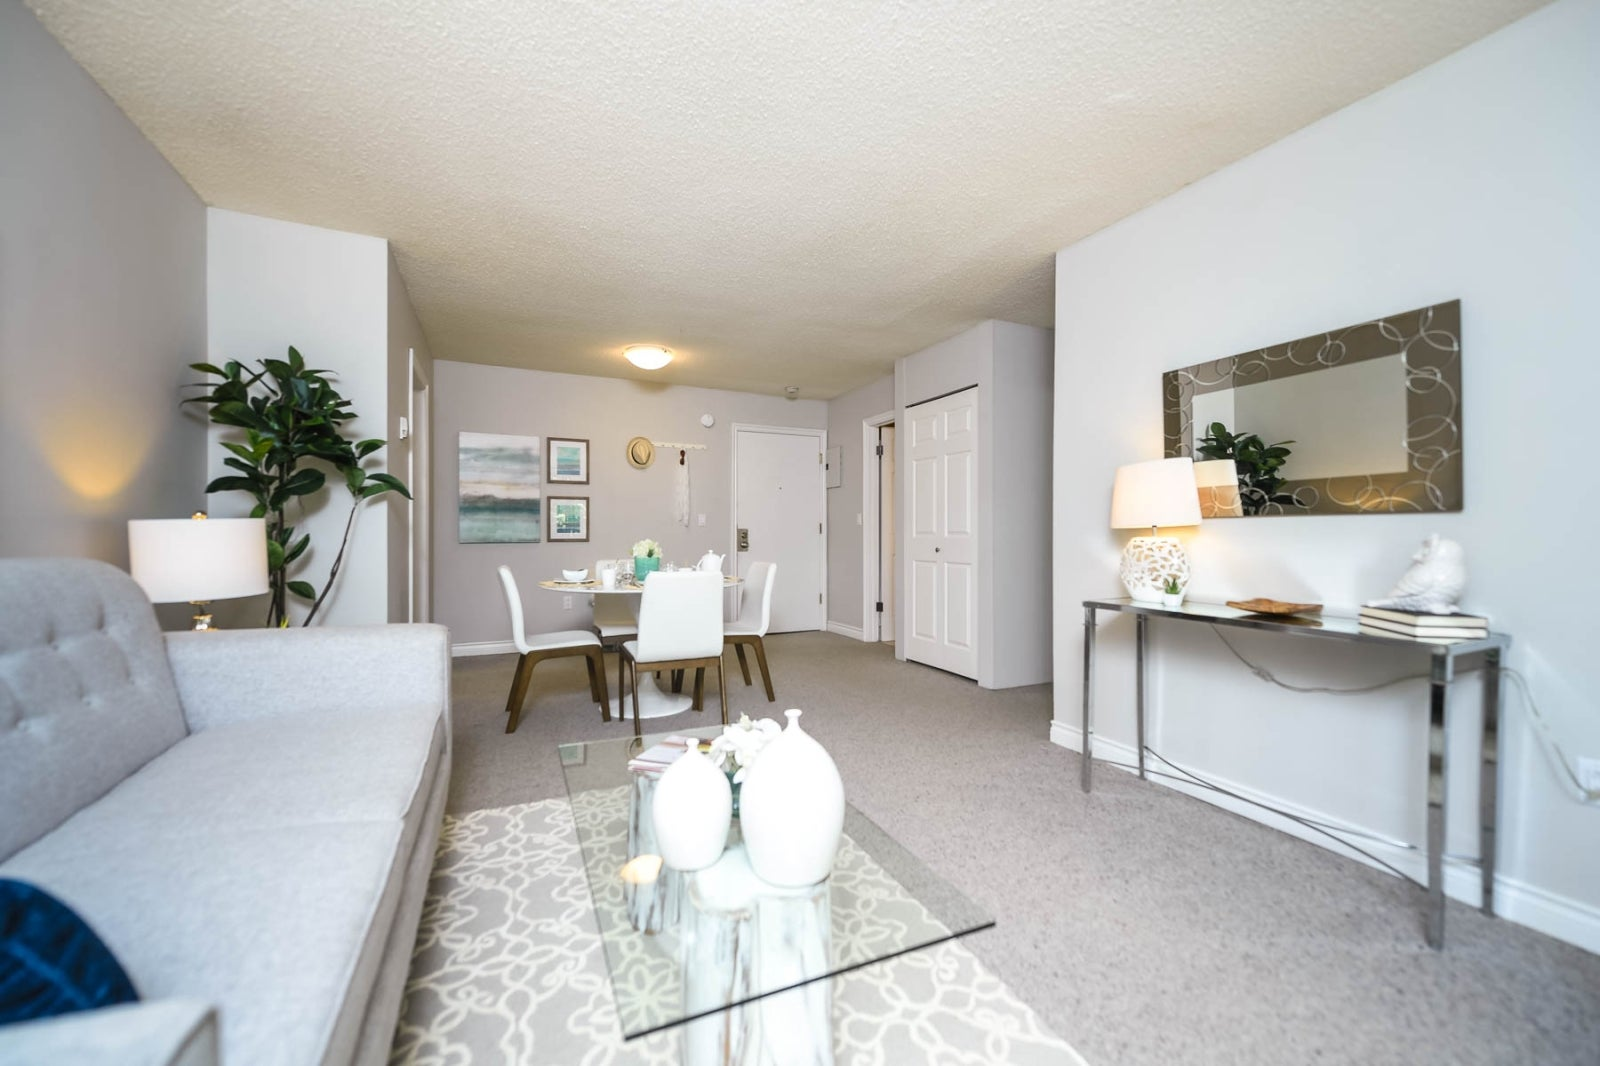 106 349 E 6TH AVENUE - Mount Pleasant VE Apartment/Condo for sale, 1 Bedroom (R2196401) #8